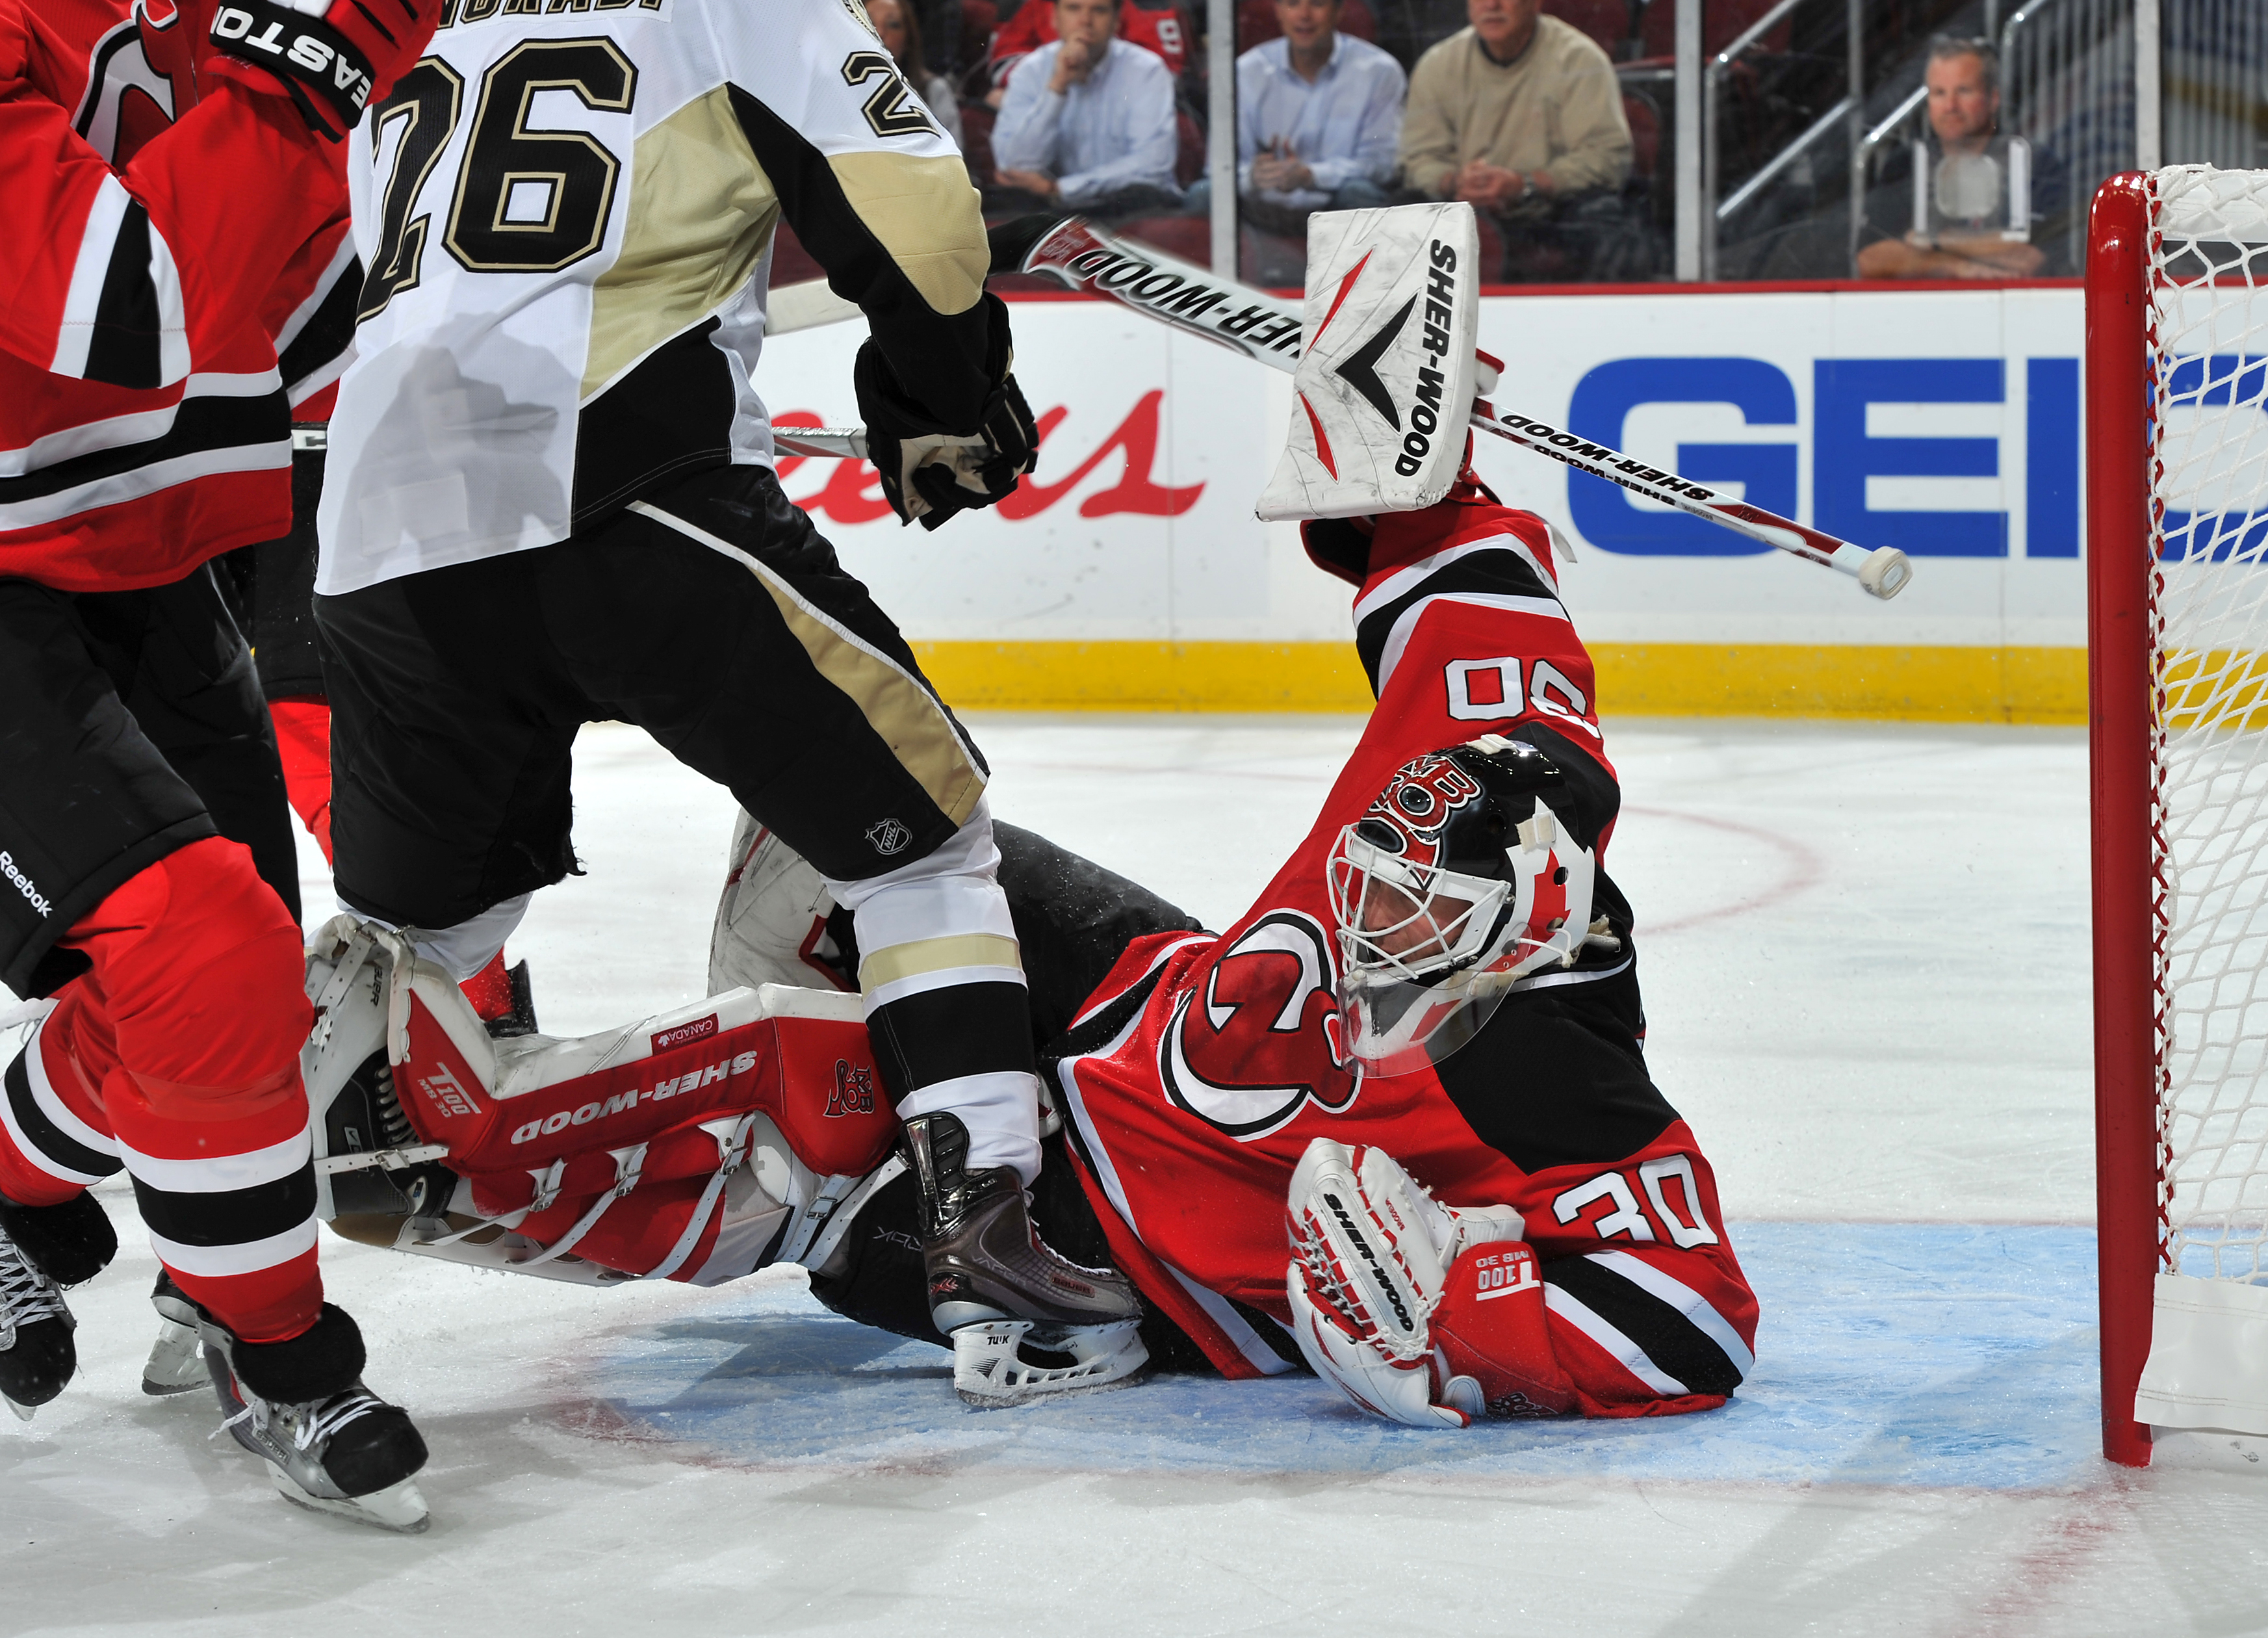 Broduer looks like he is still the netminder we know and love, he just isn't playing like him anymore.